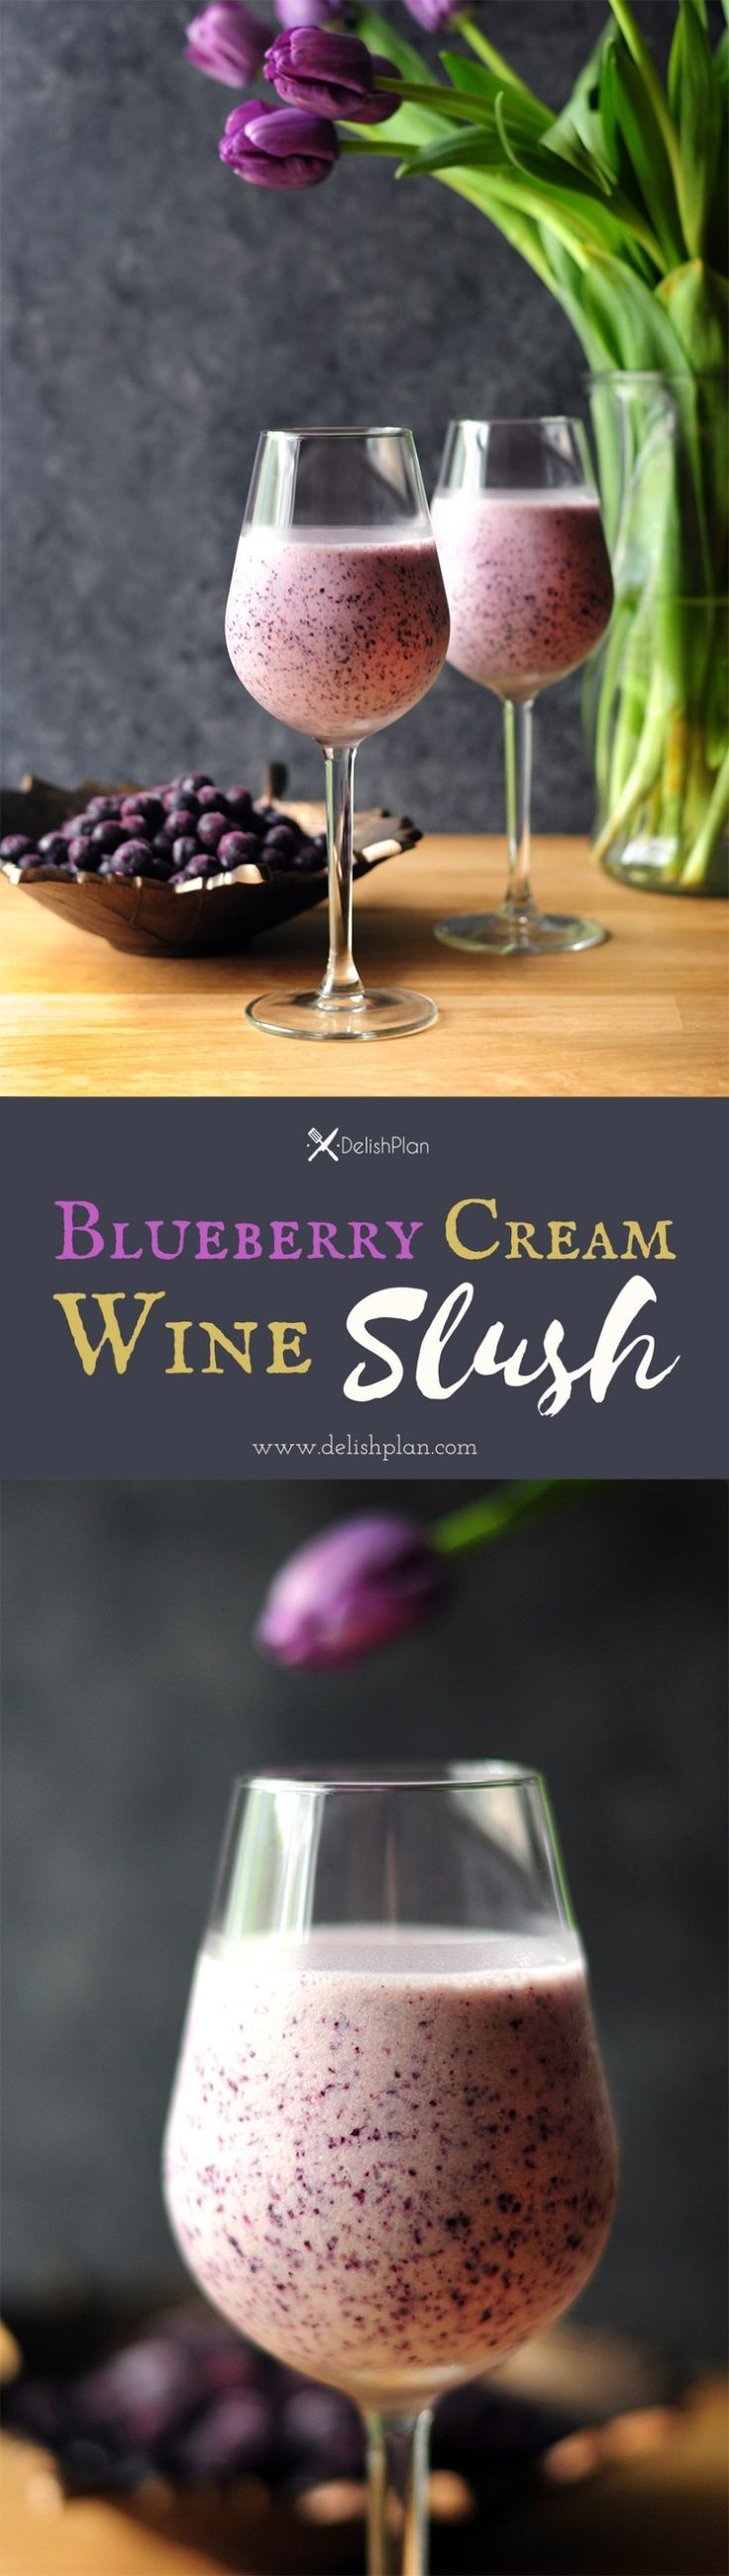 Blueberry, ice cream, and white wine, this blueberry cream wine slush has got all your favorite things together!